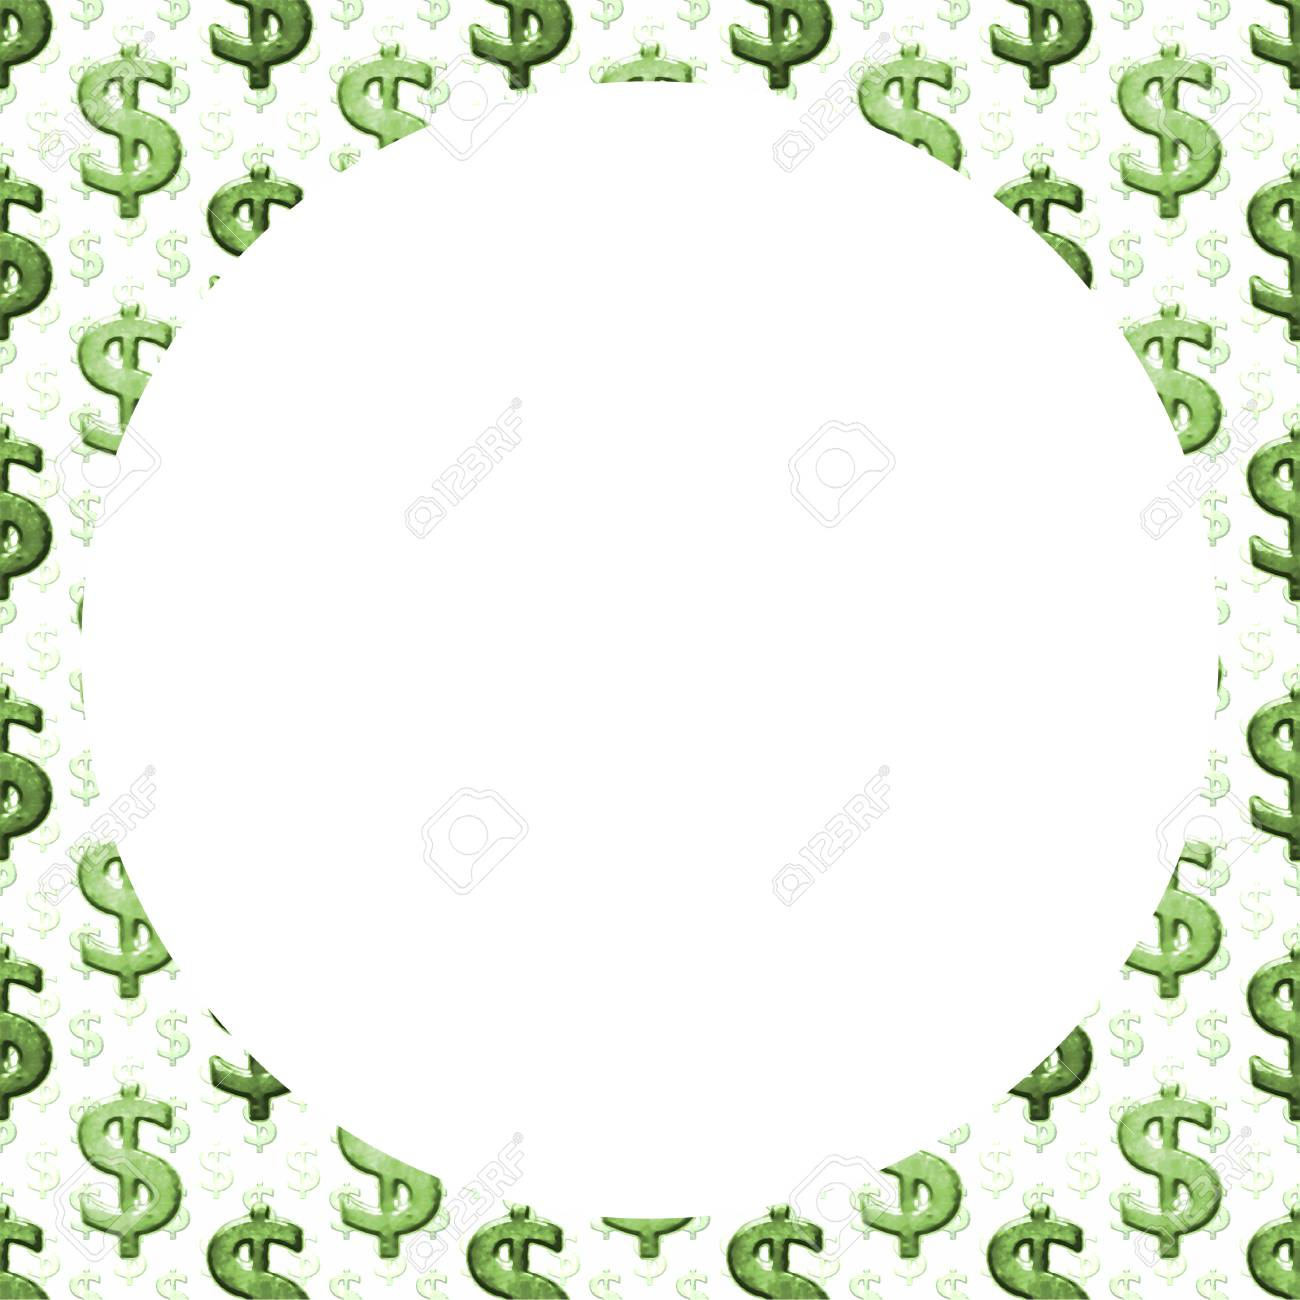 White background with dollar sign pattern design borders.